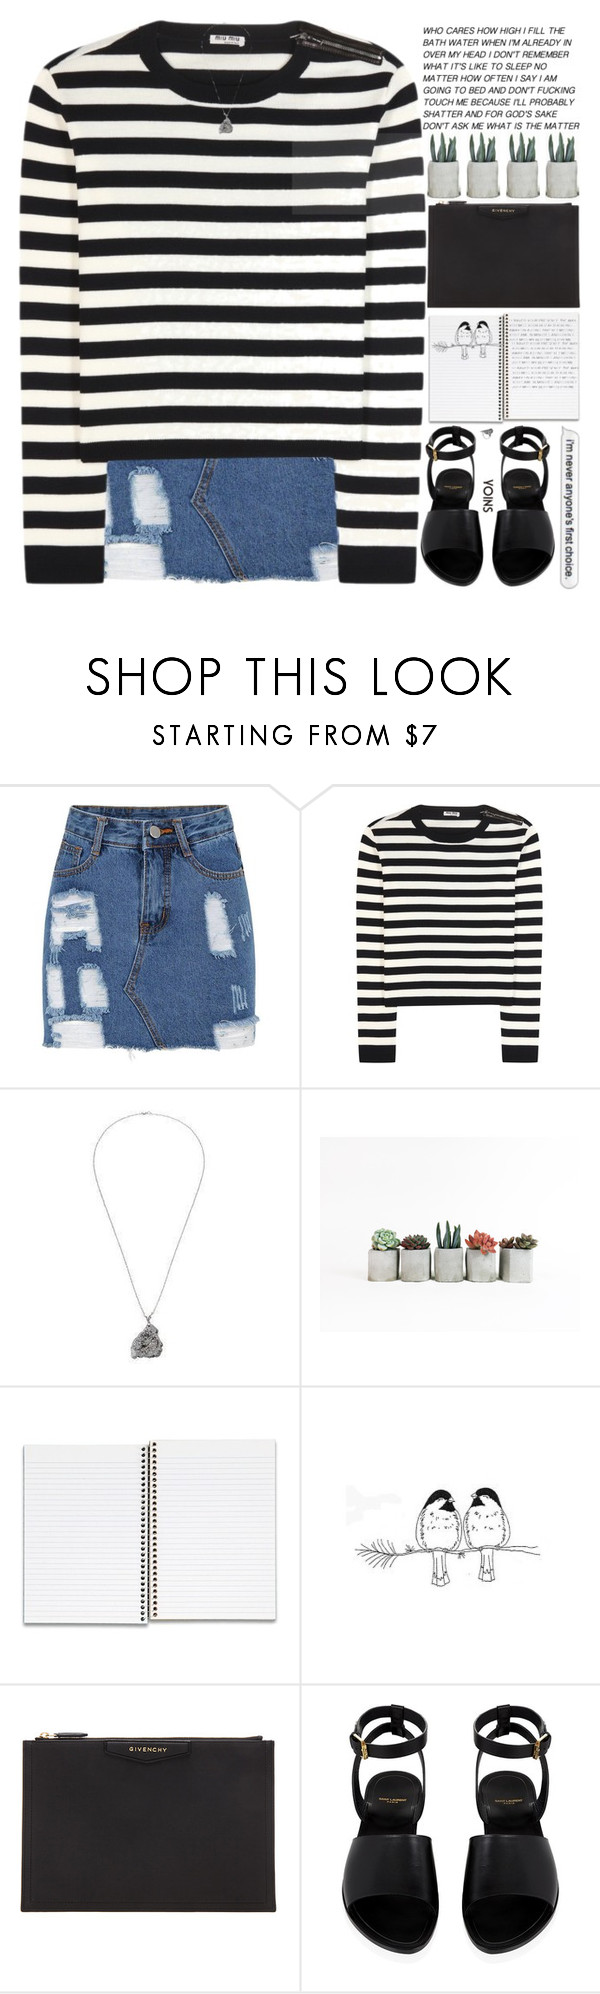 """""""just take a deep breath, everything will be alright"""" by alienbabs ❤ liked on Polyvore featuring Miu Miu, Givenchy, Yves Saint Laurent, bedroom, clean, organized, yoins and shein"""